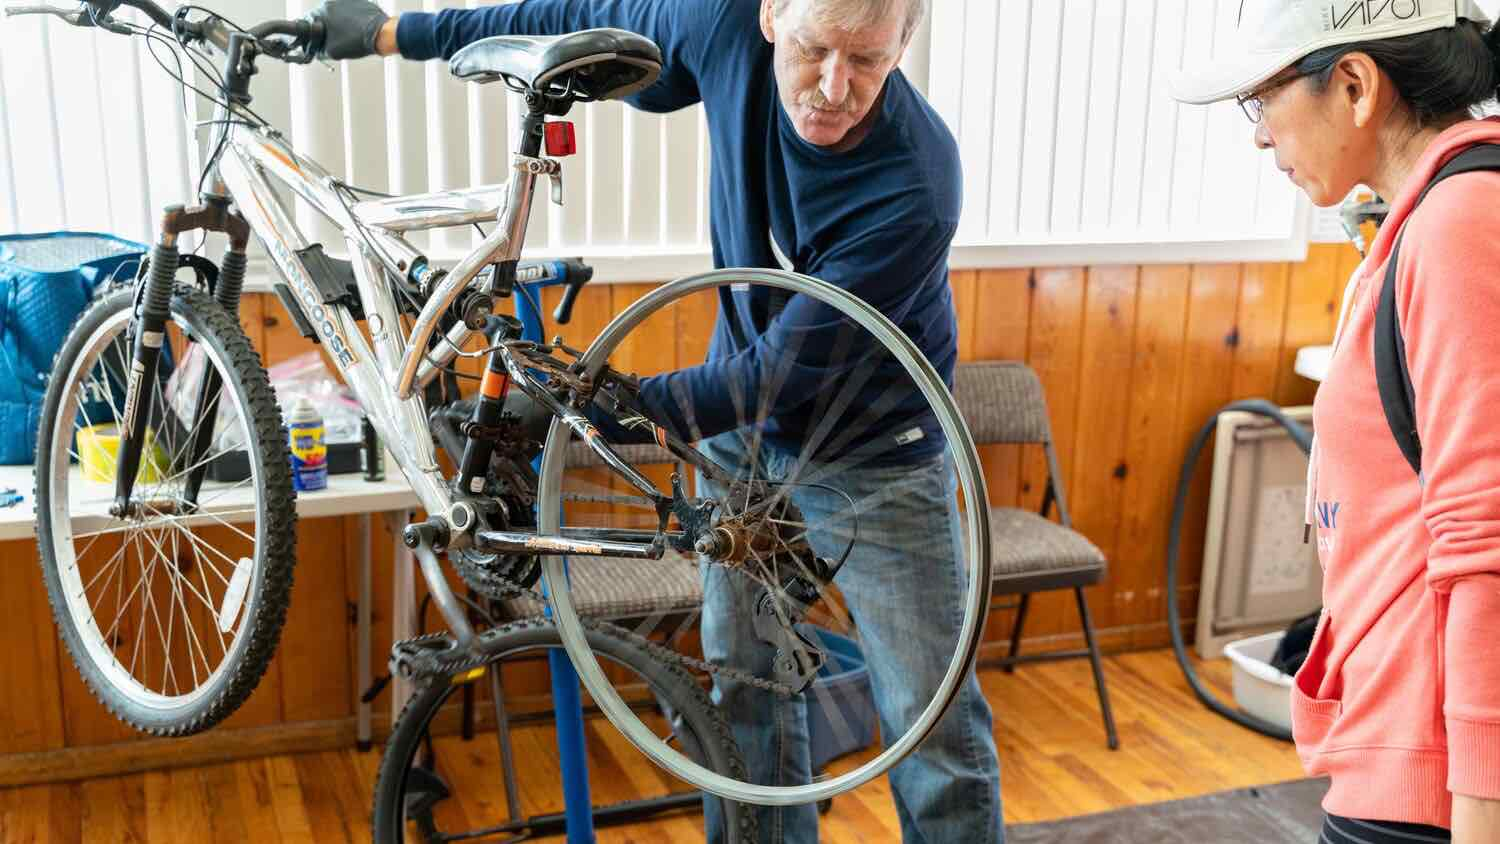 Bike wheel being examined during a repair cafe